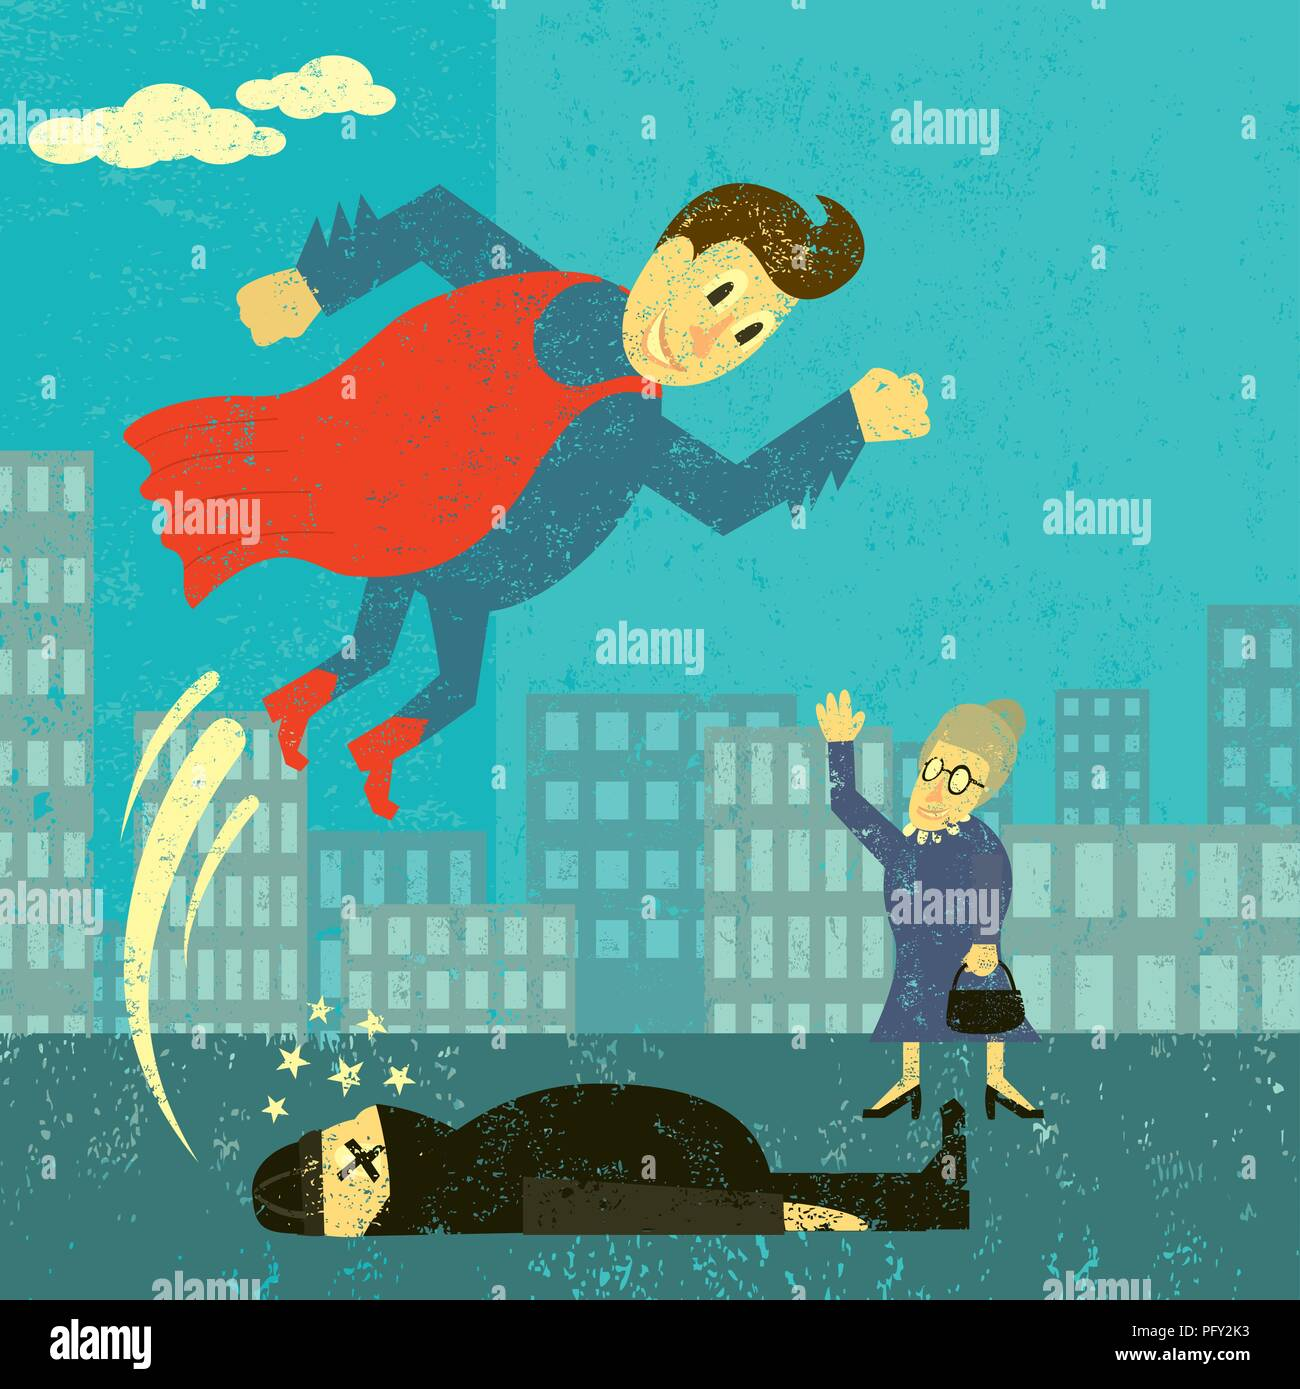 Super hero saves the day. A super hero saves an elderly woman from a thief. - Stock Vector